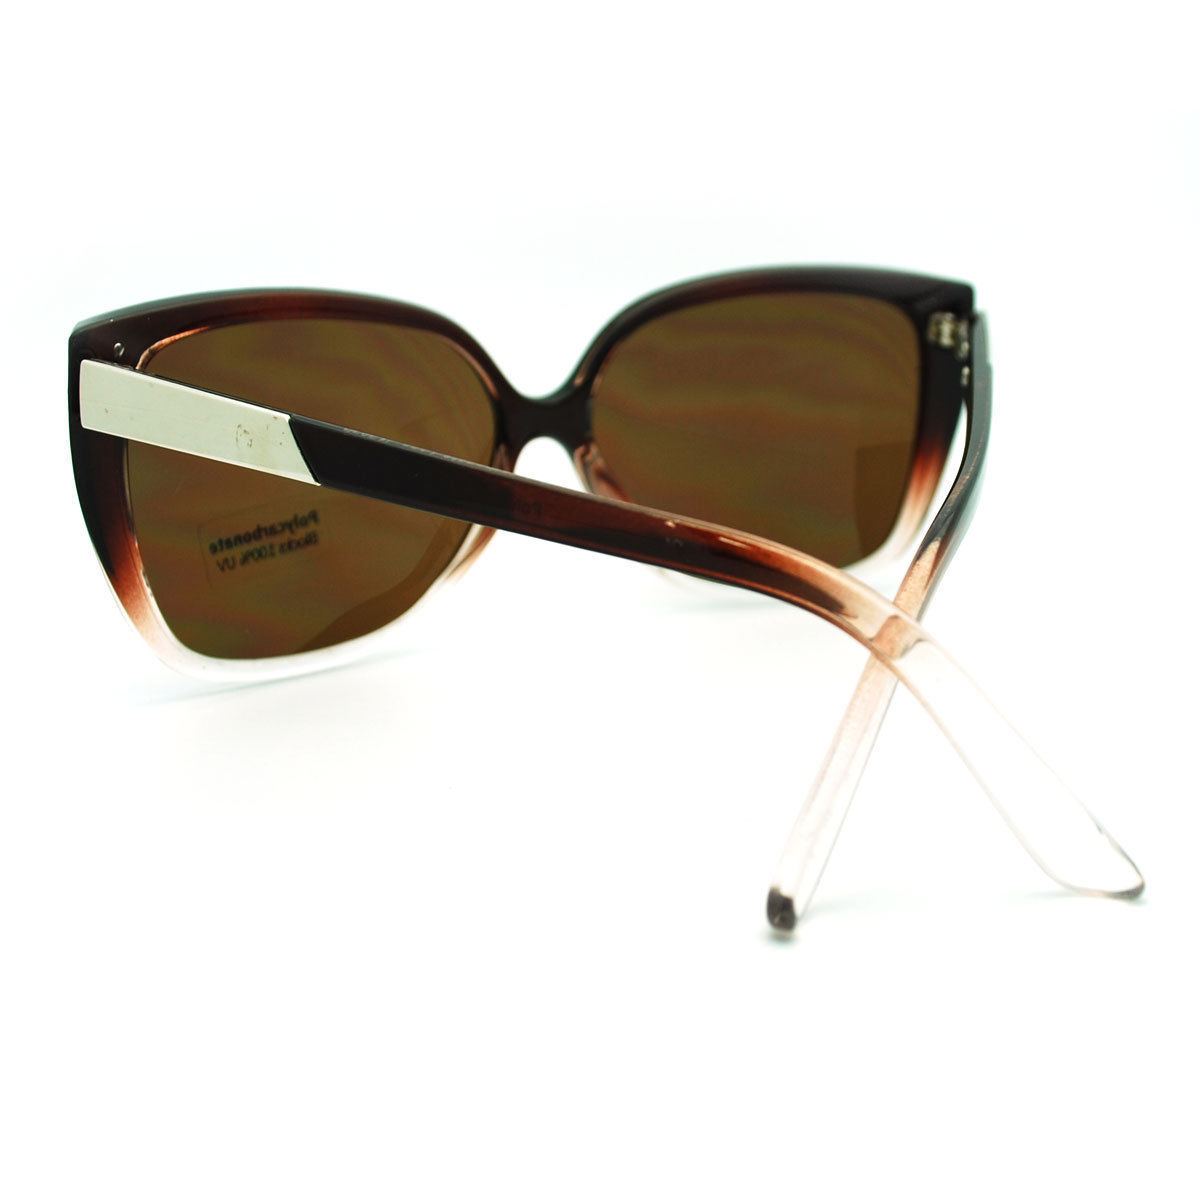 Oversized Butterfly Frame Sunglasses Womens Chic Celebrity Fashion Shades